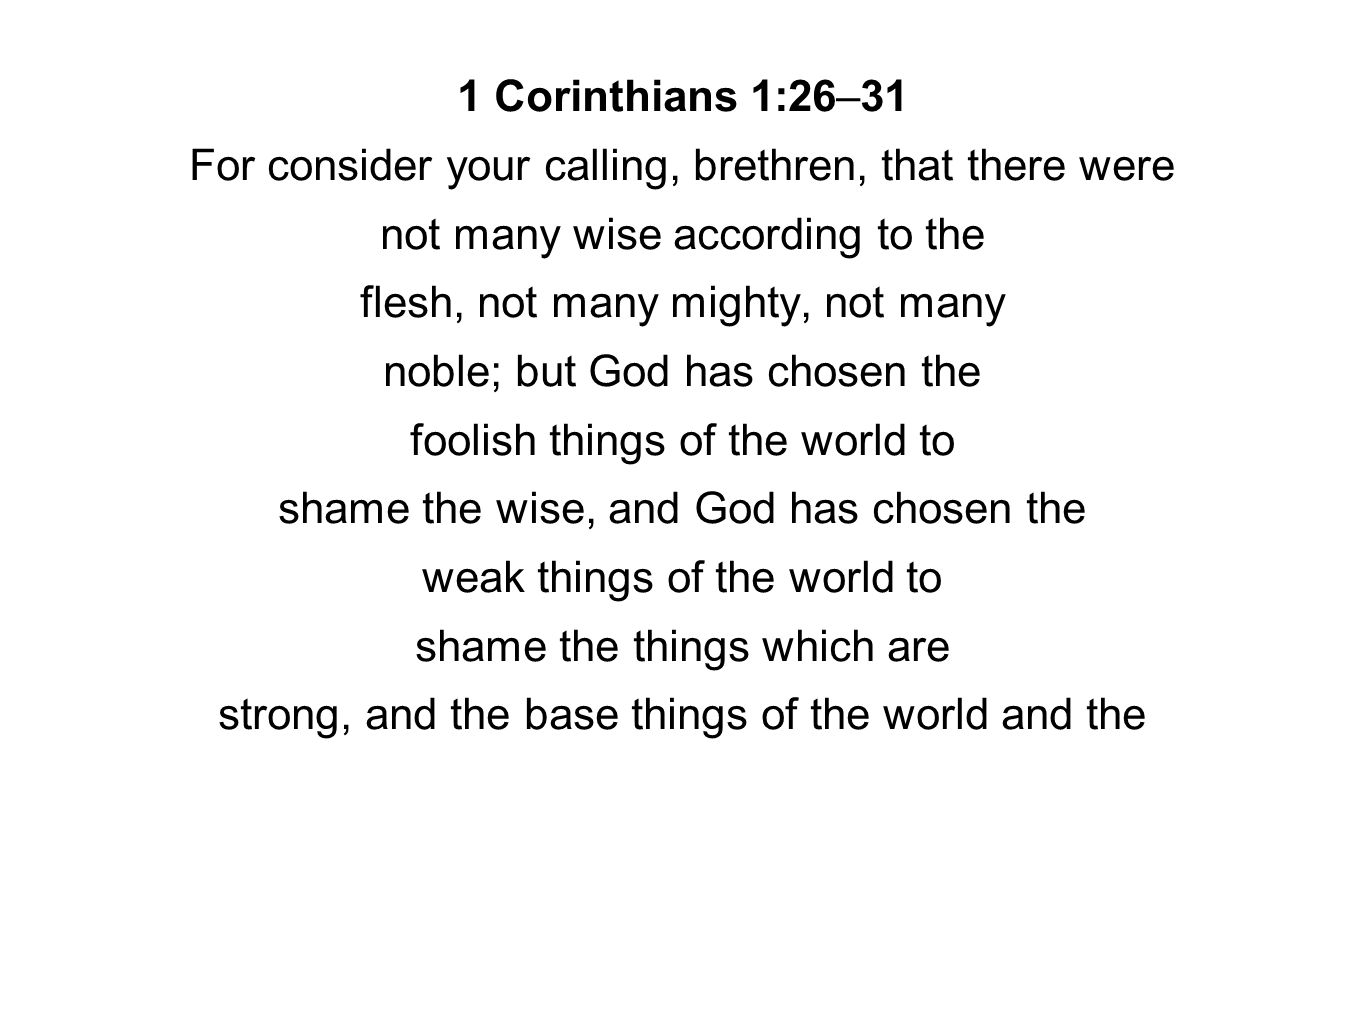 1 Corinthians 1:26–31 For consider your calling, brethren, that there were not many wise according to the flesh, not many mighty, not many noble; but God has chosen the foolish things of the world to shame the wise, and God has chosen the weak things of the world to shame the things which are strong, and the base things of the world and the